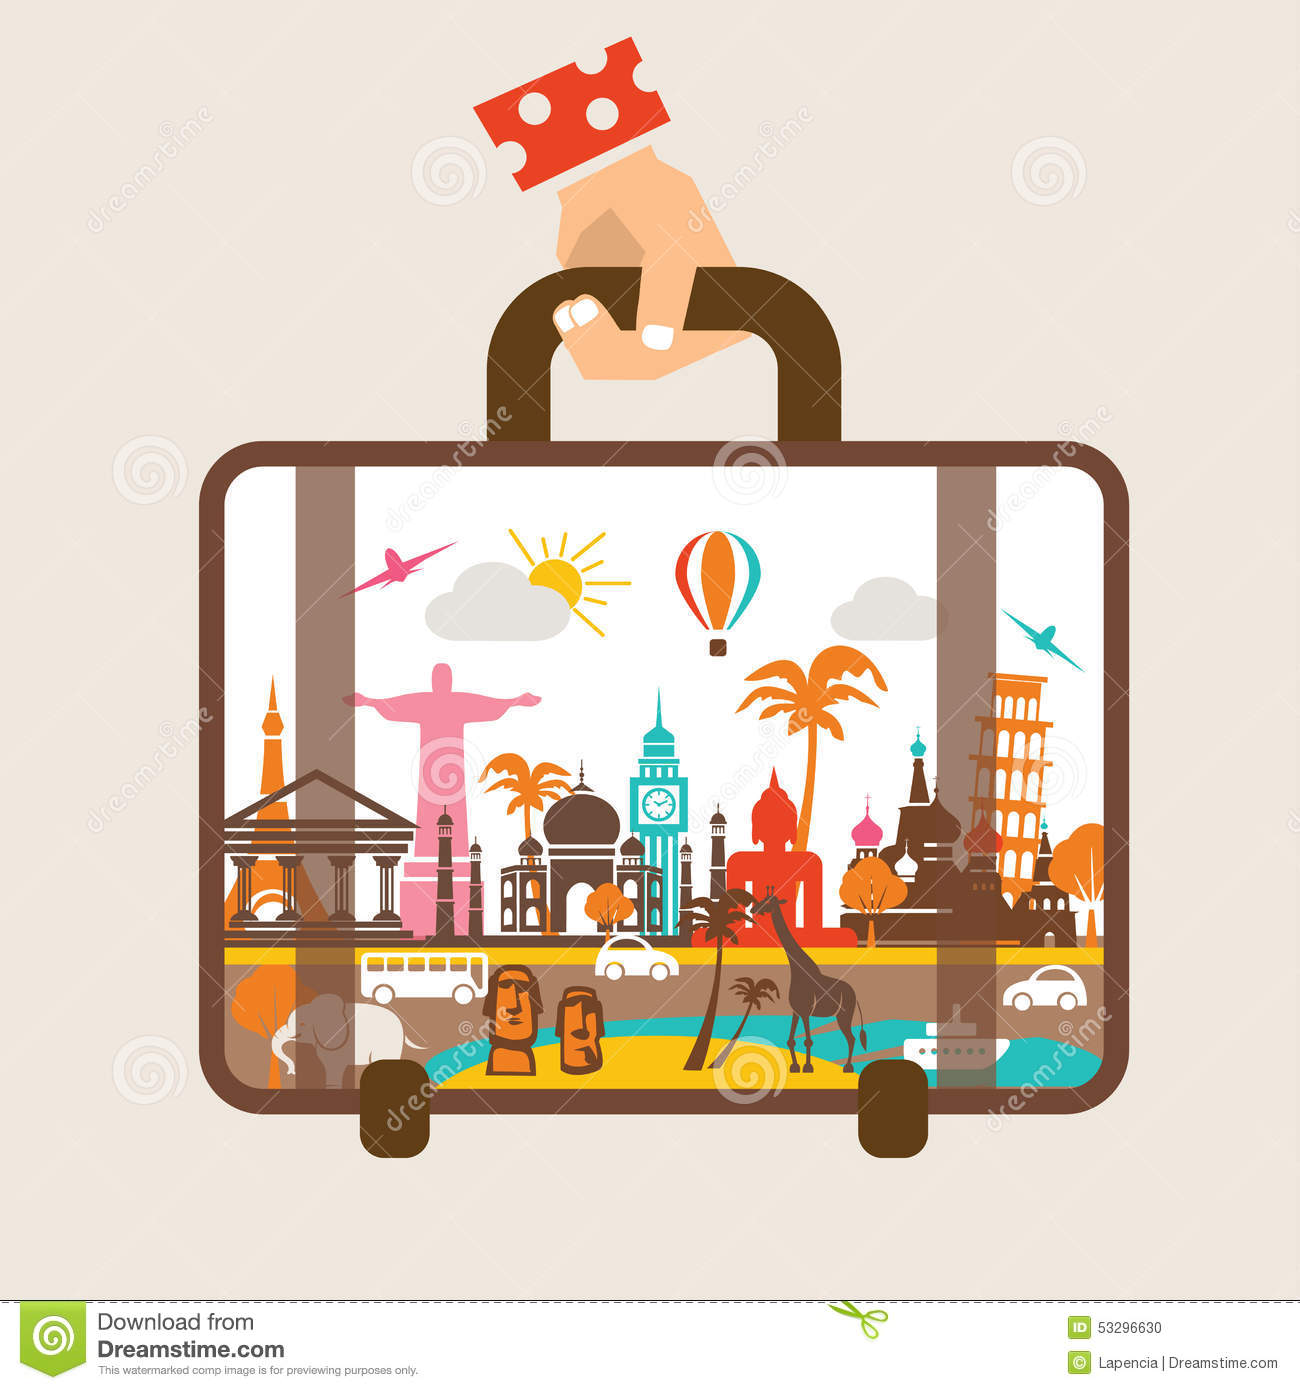 Hand holding luggage, travel around the world